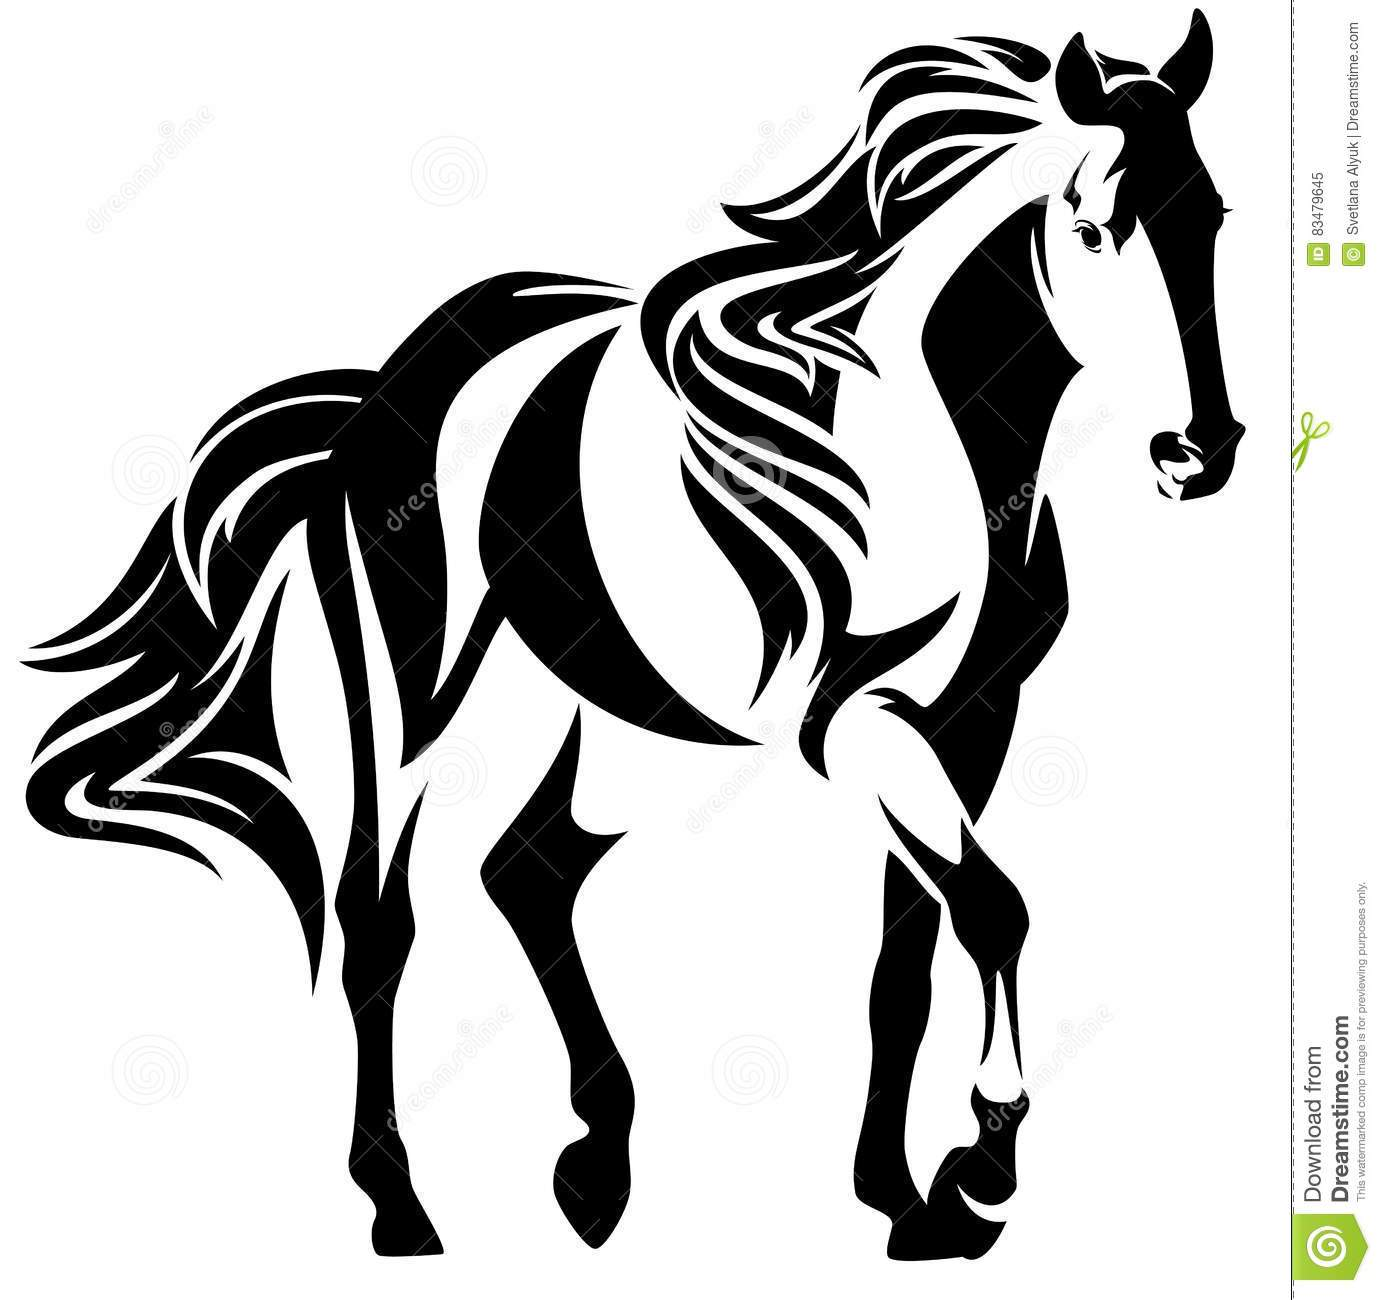 Mustang clipart black and white 6 » Clipart Portal.